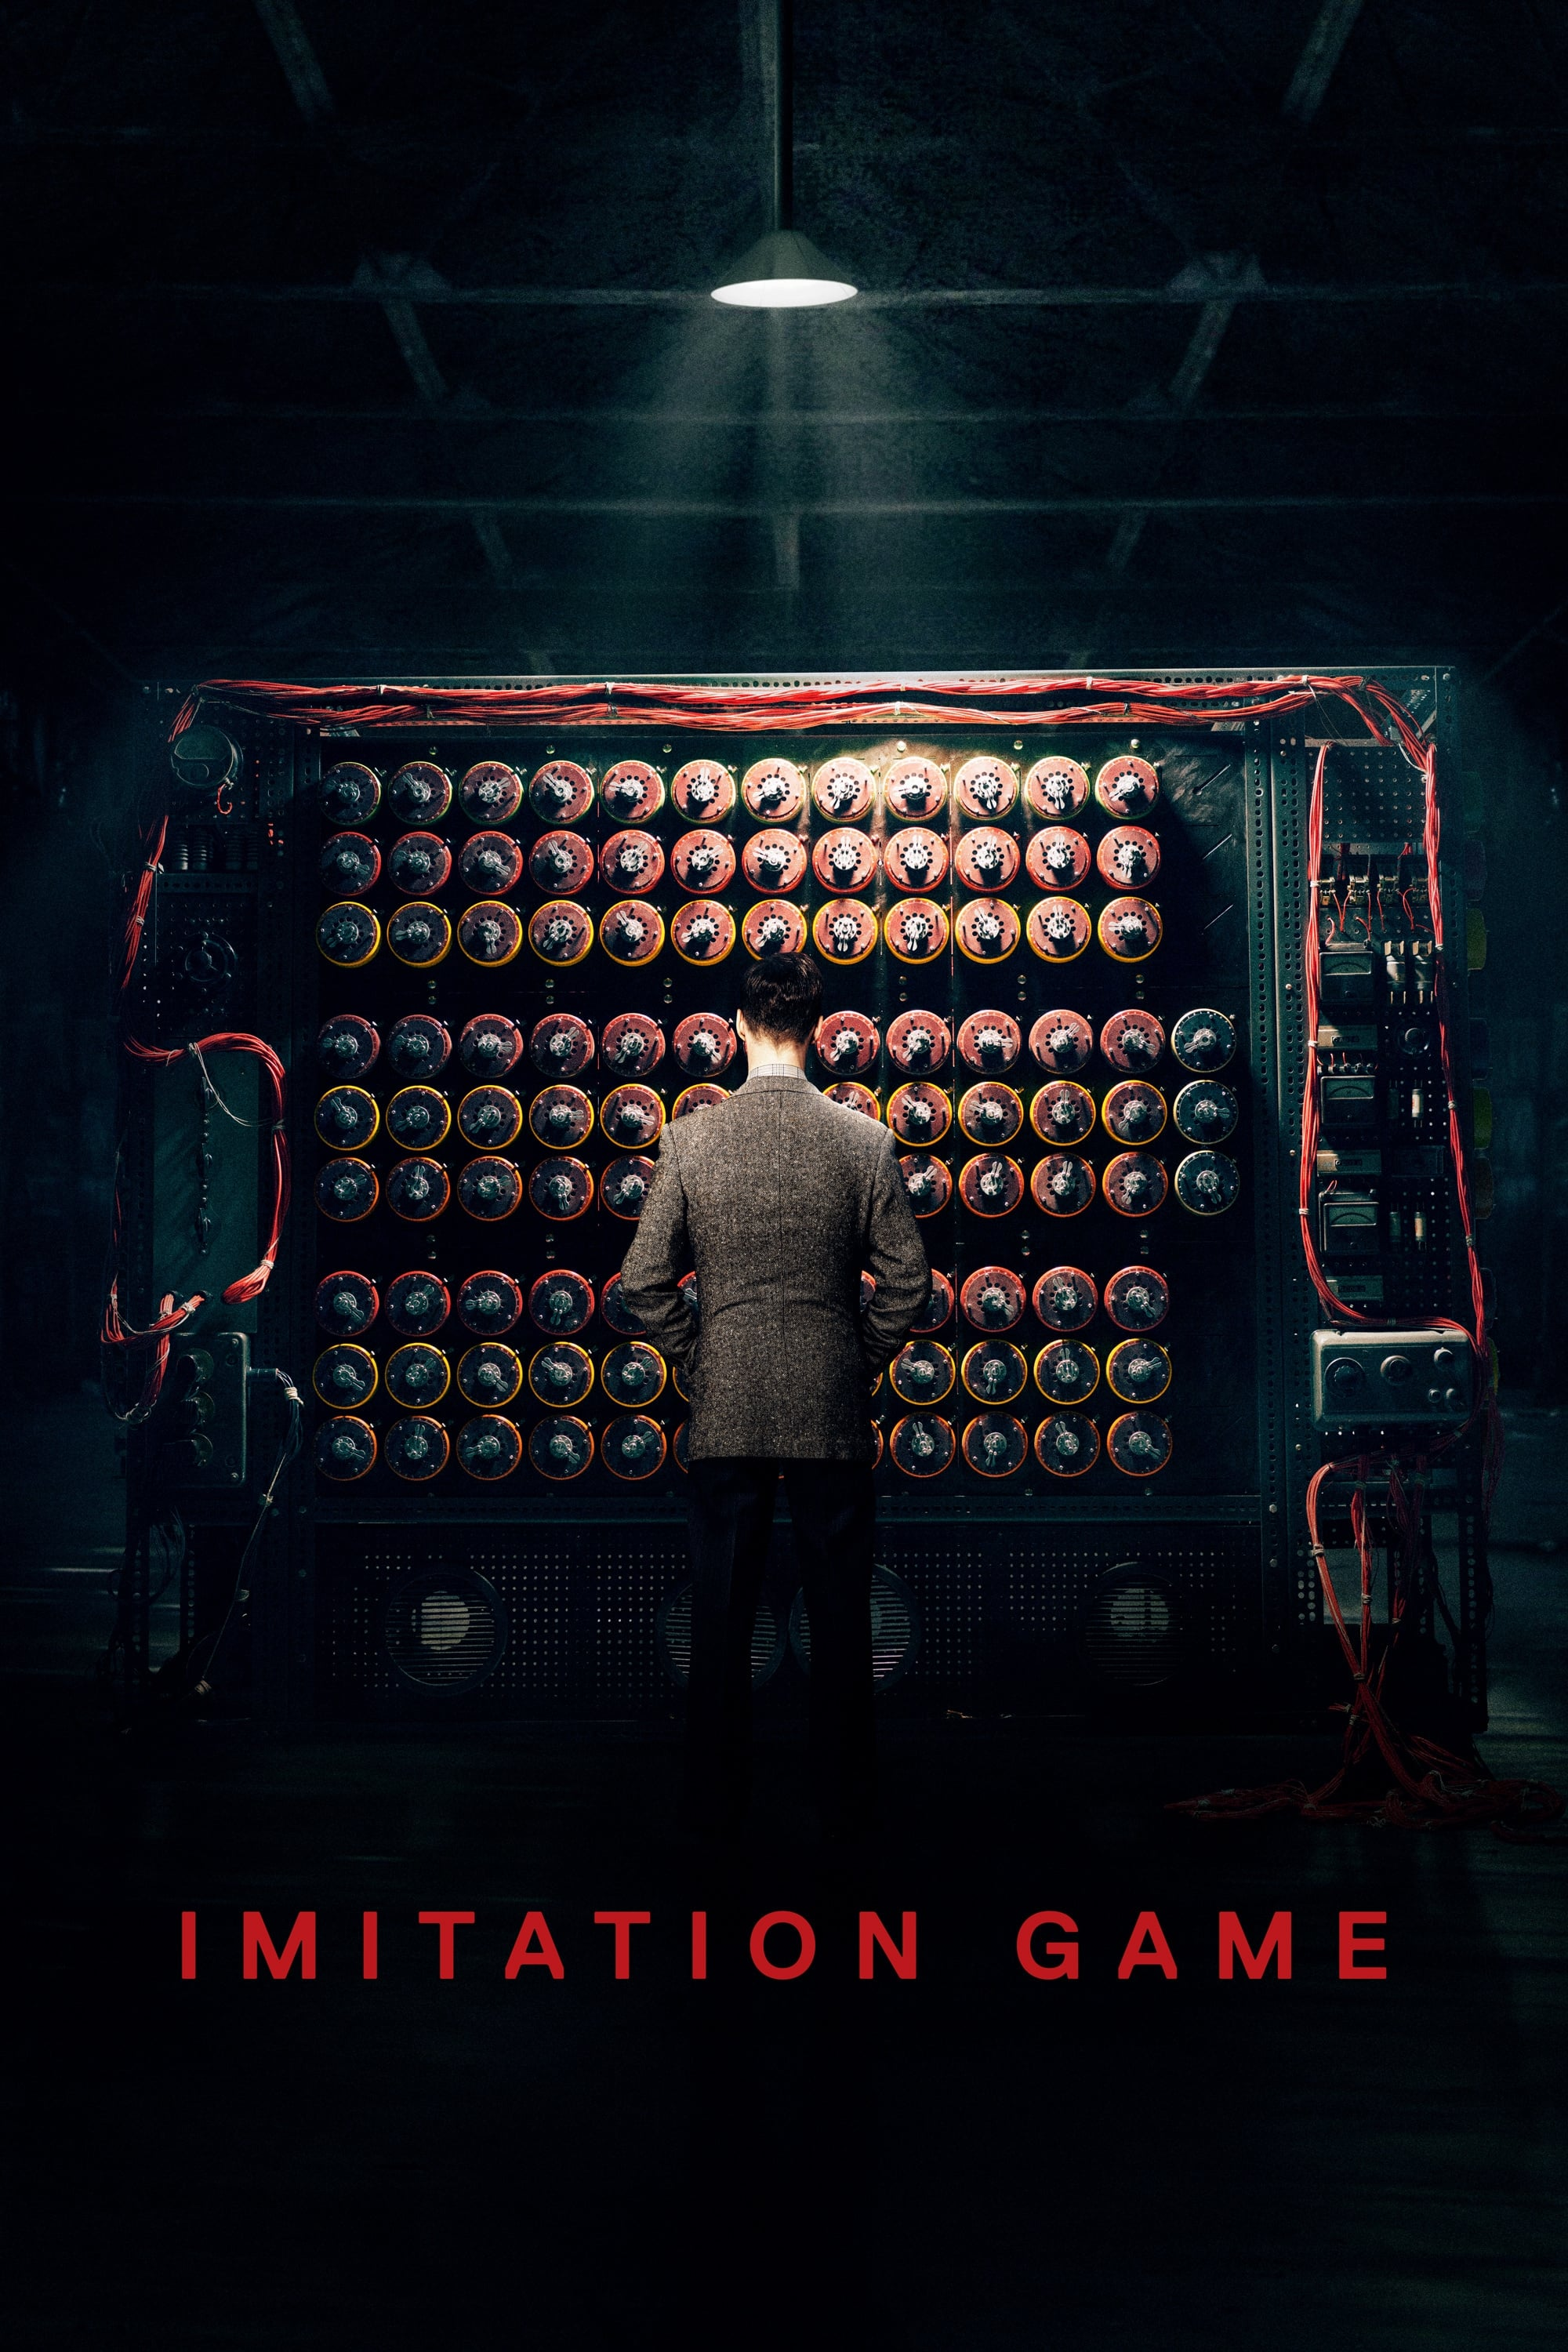 Poster and image movie Film The Imitation Game. Jocul codurilor - Jocul codurilor - The Imitation Game - The Imitation Game -  2014